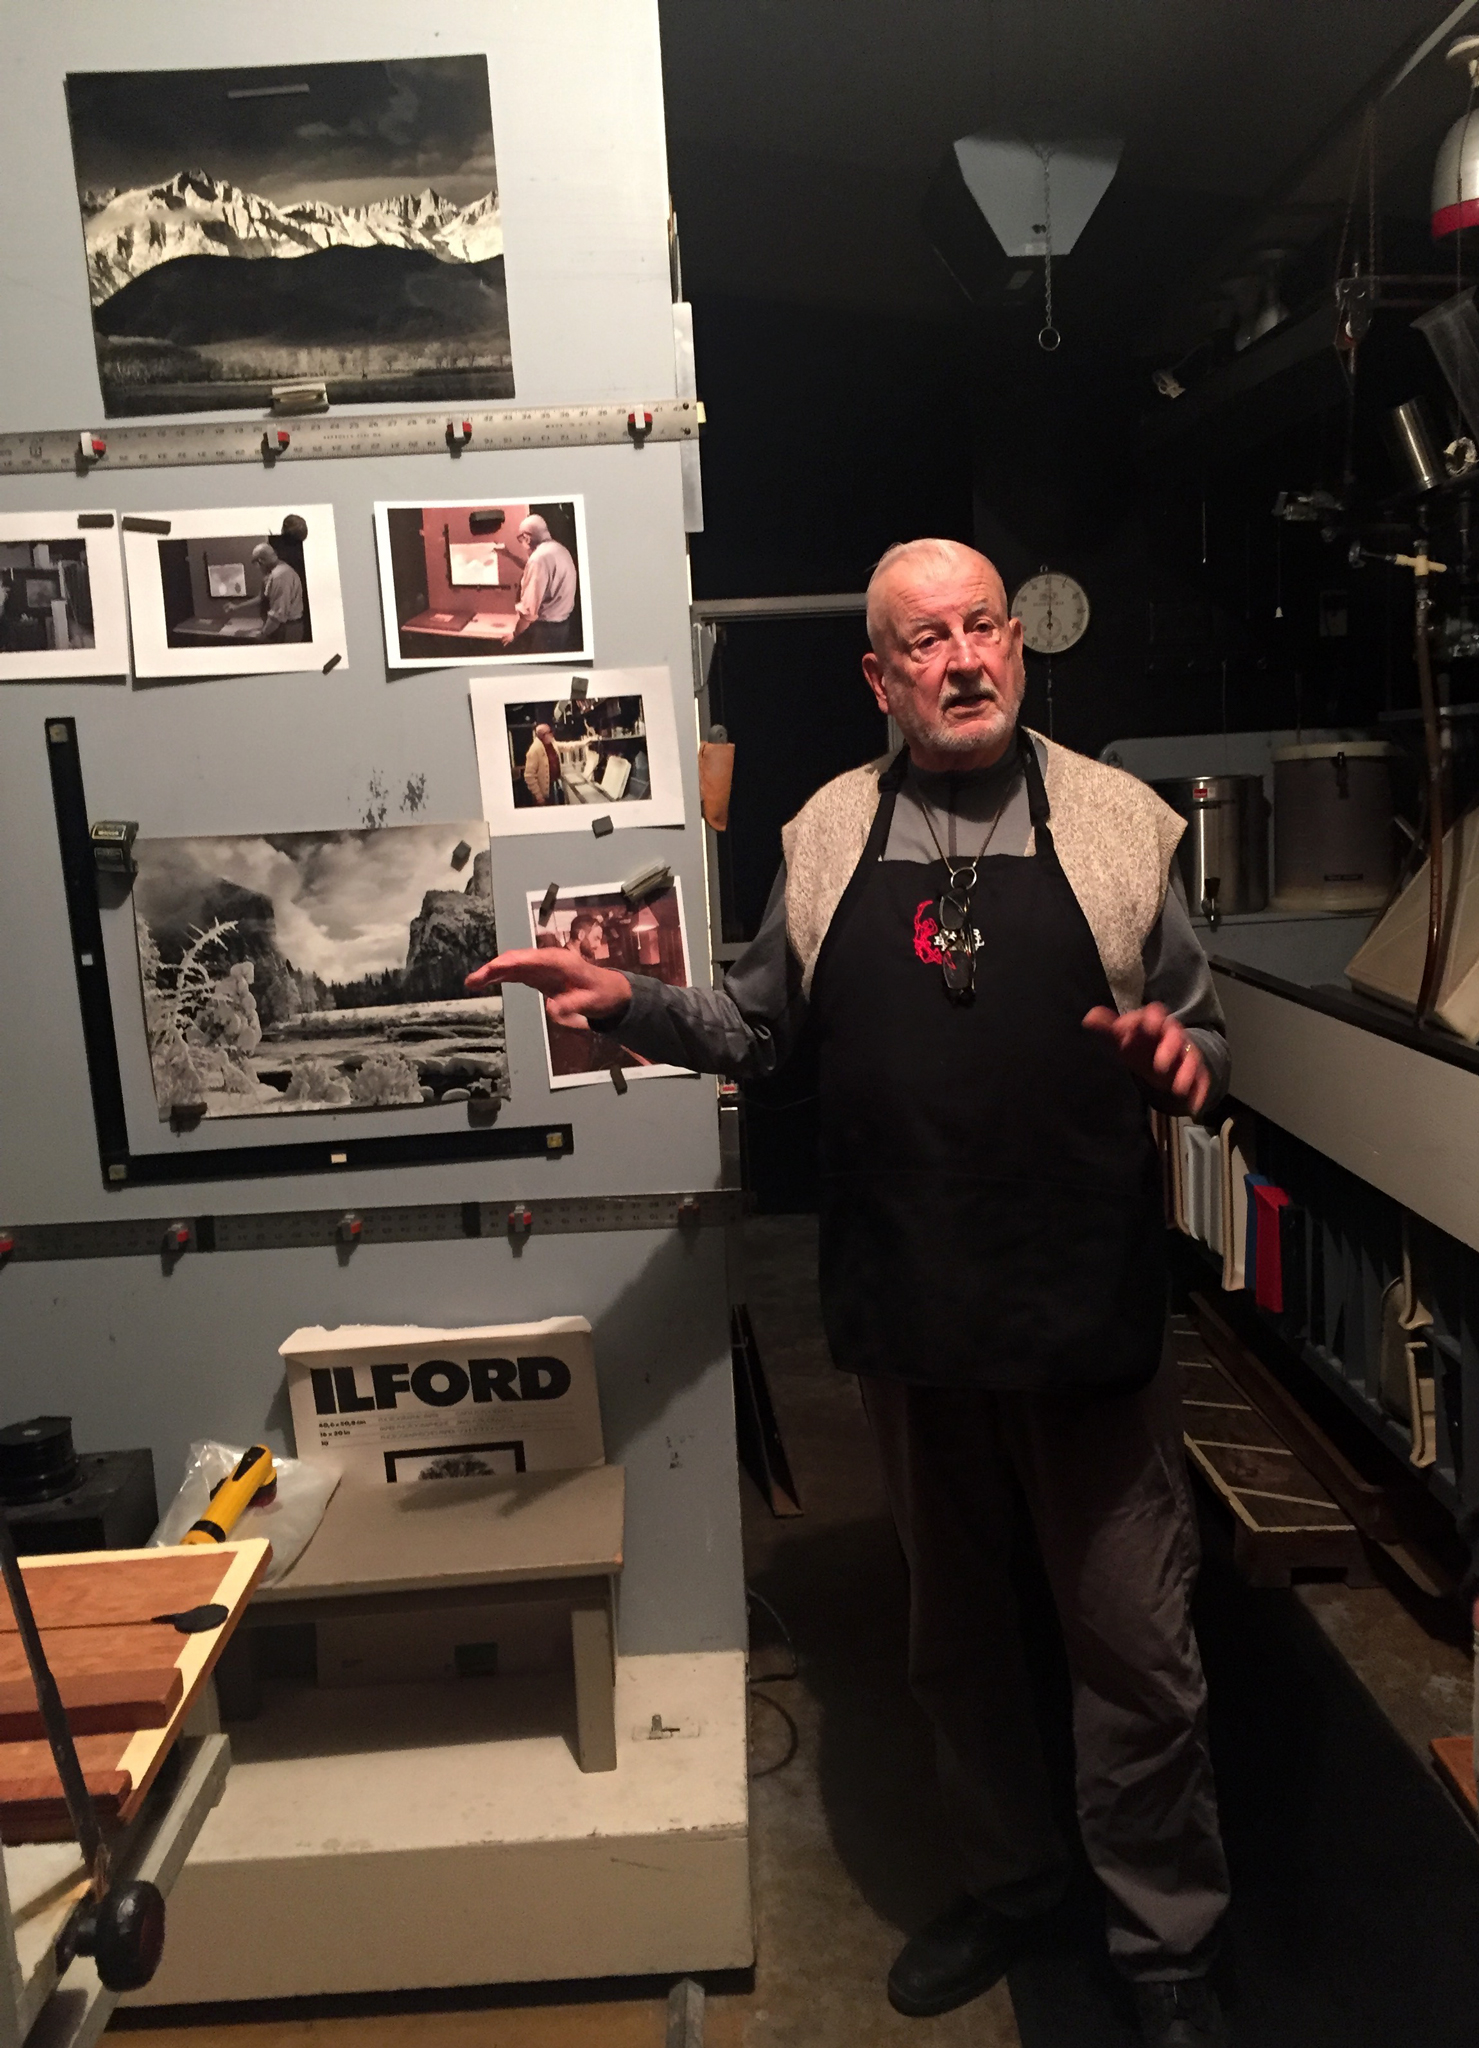 Michael Adams talking about Ansel's darkroom and workspace at his home in the Carmel Highlands